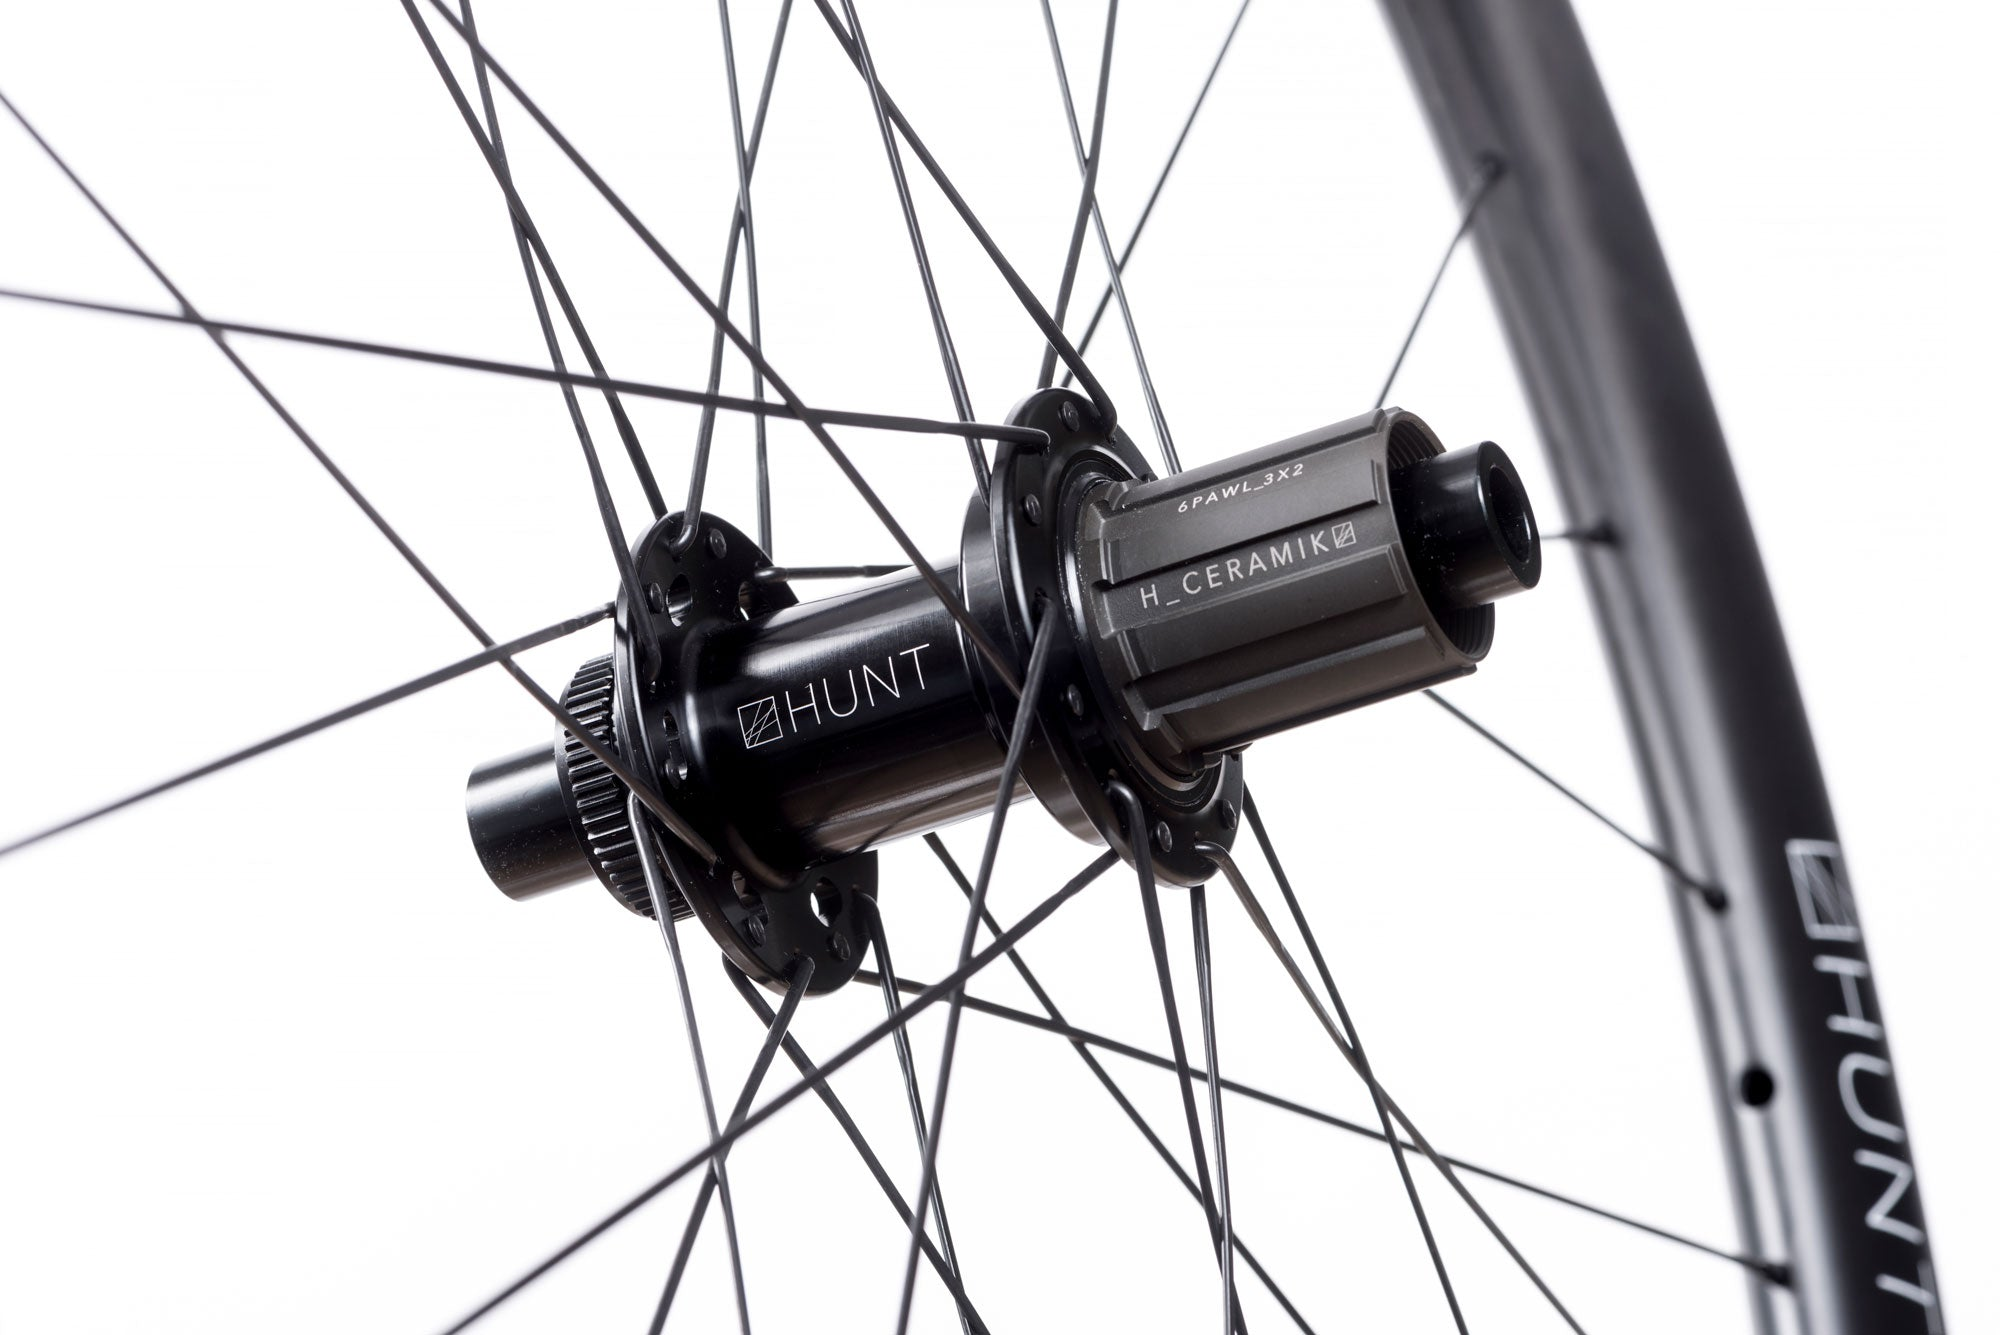 <h1>FREEHUB BODY</h1><i> Durability is a theme for HUNT as time and money you spend fixing is time and money you cannot spend riding or upgrading your bikes. As a result, we've developed the H_CERAMIK coating to provide excellent durability and protect against cassette sprocket damage often seen on standard alloy freehub bodies.</i>